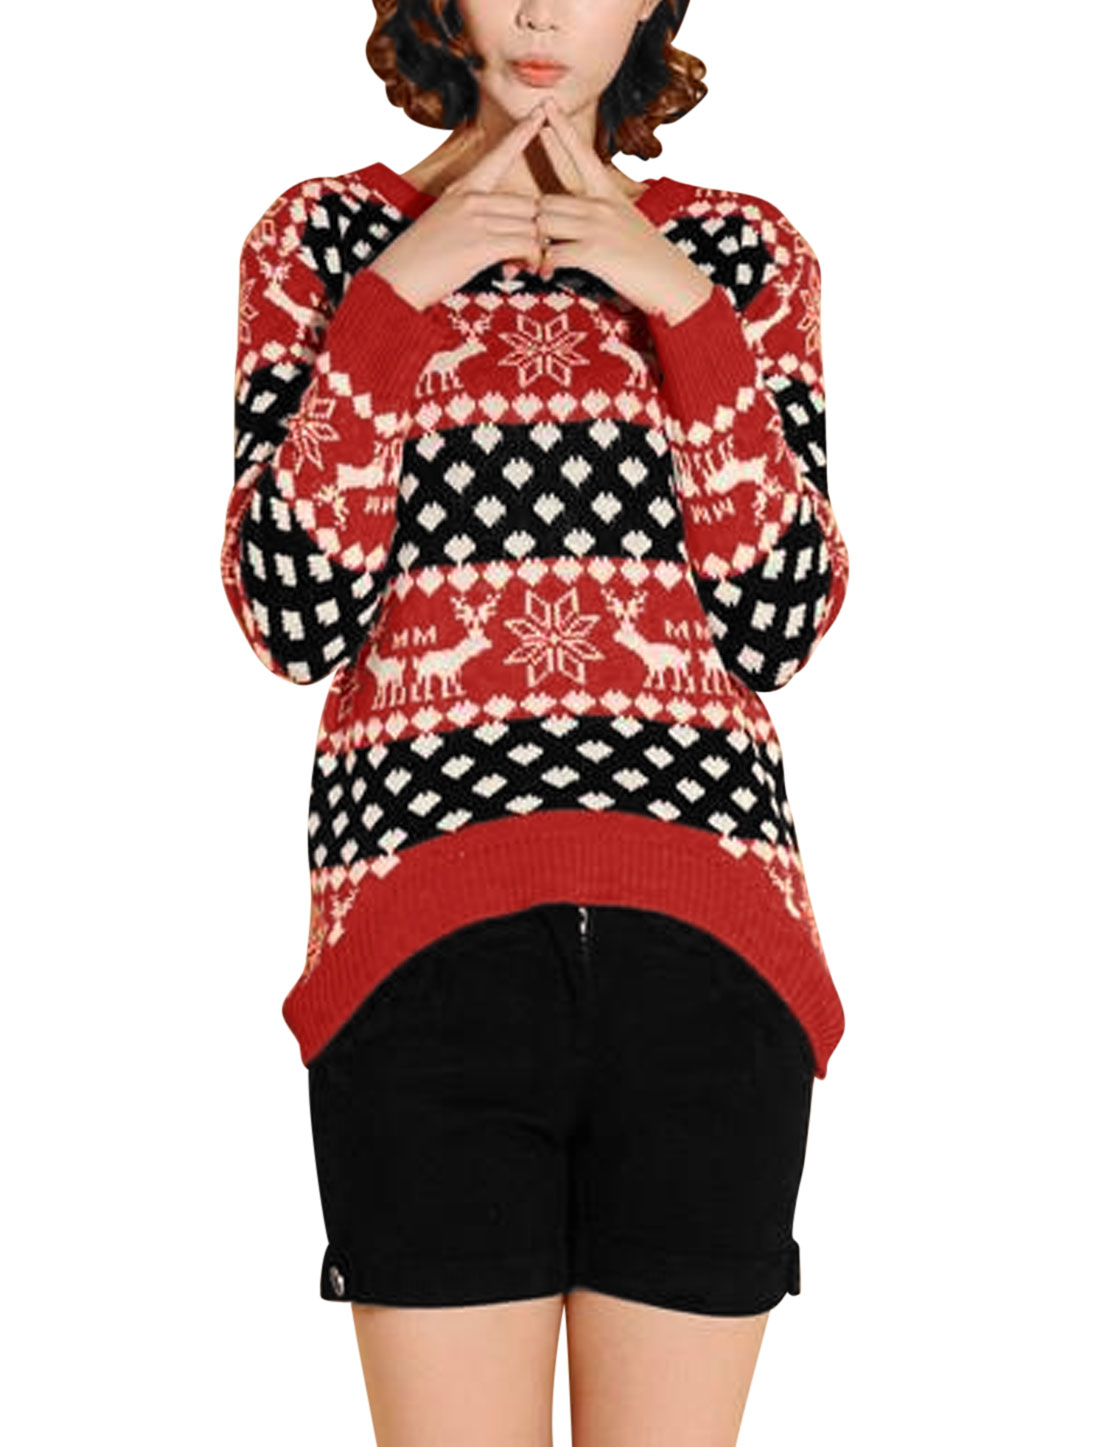 Lady Slipover Long Sleeve Deer Geometric Pattern Sweater Red Black S